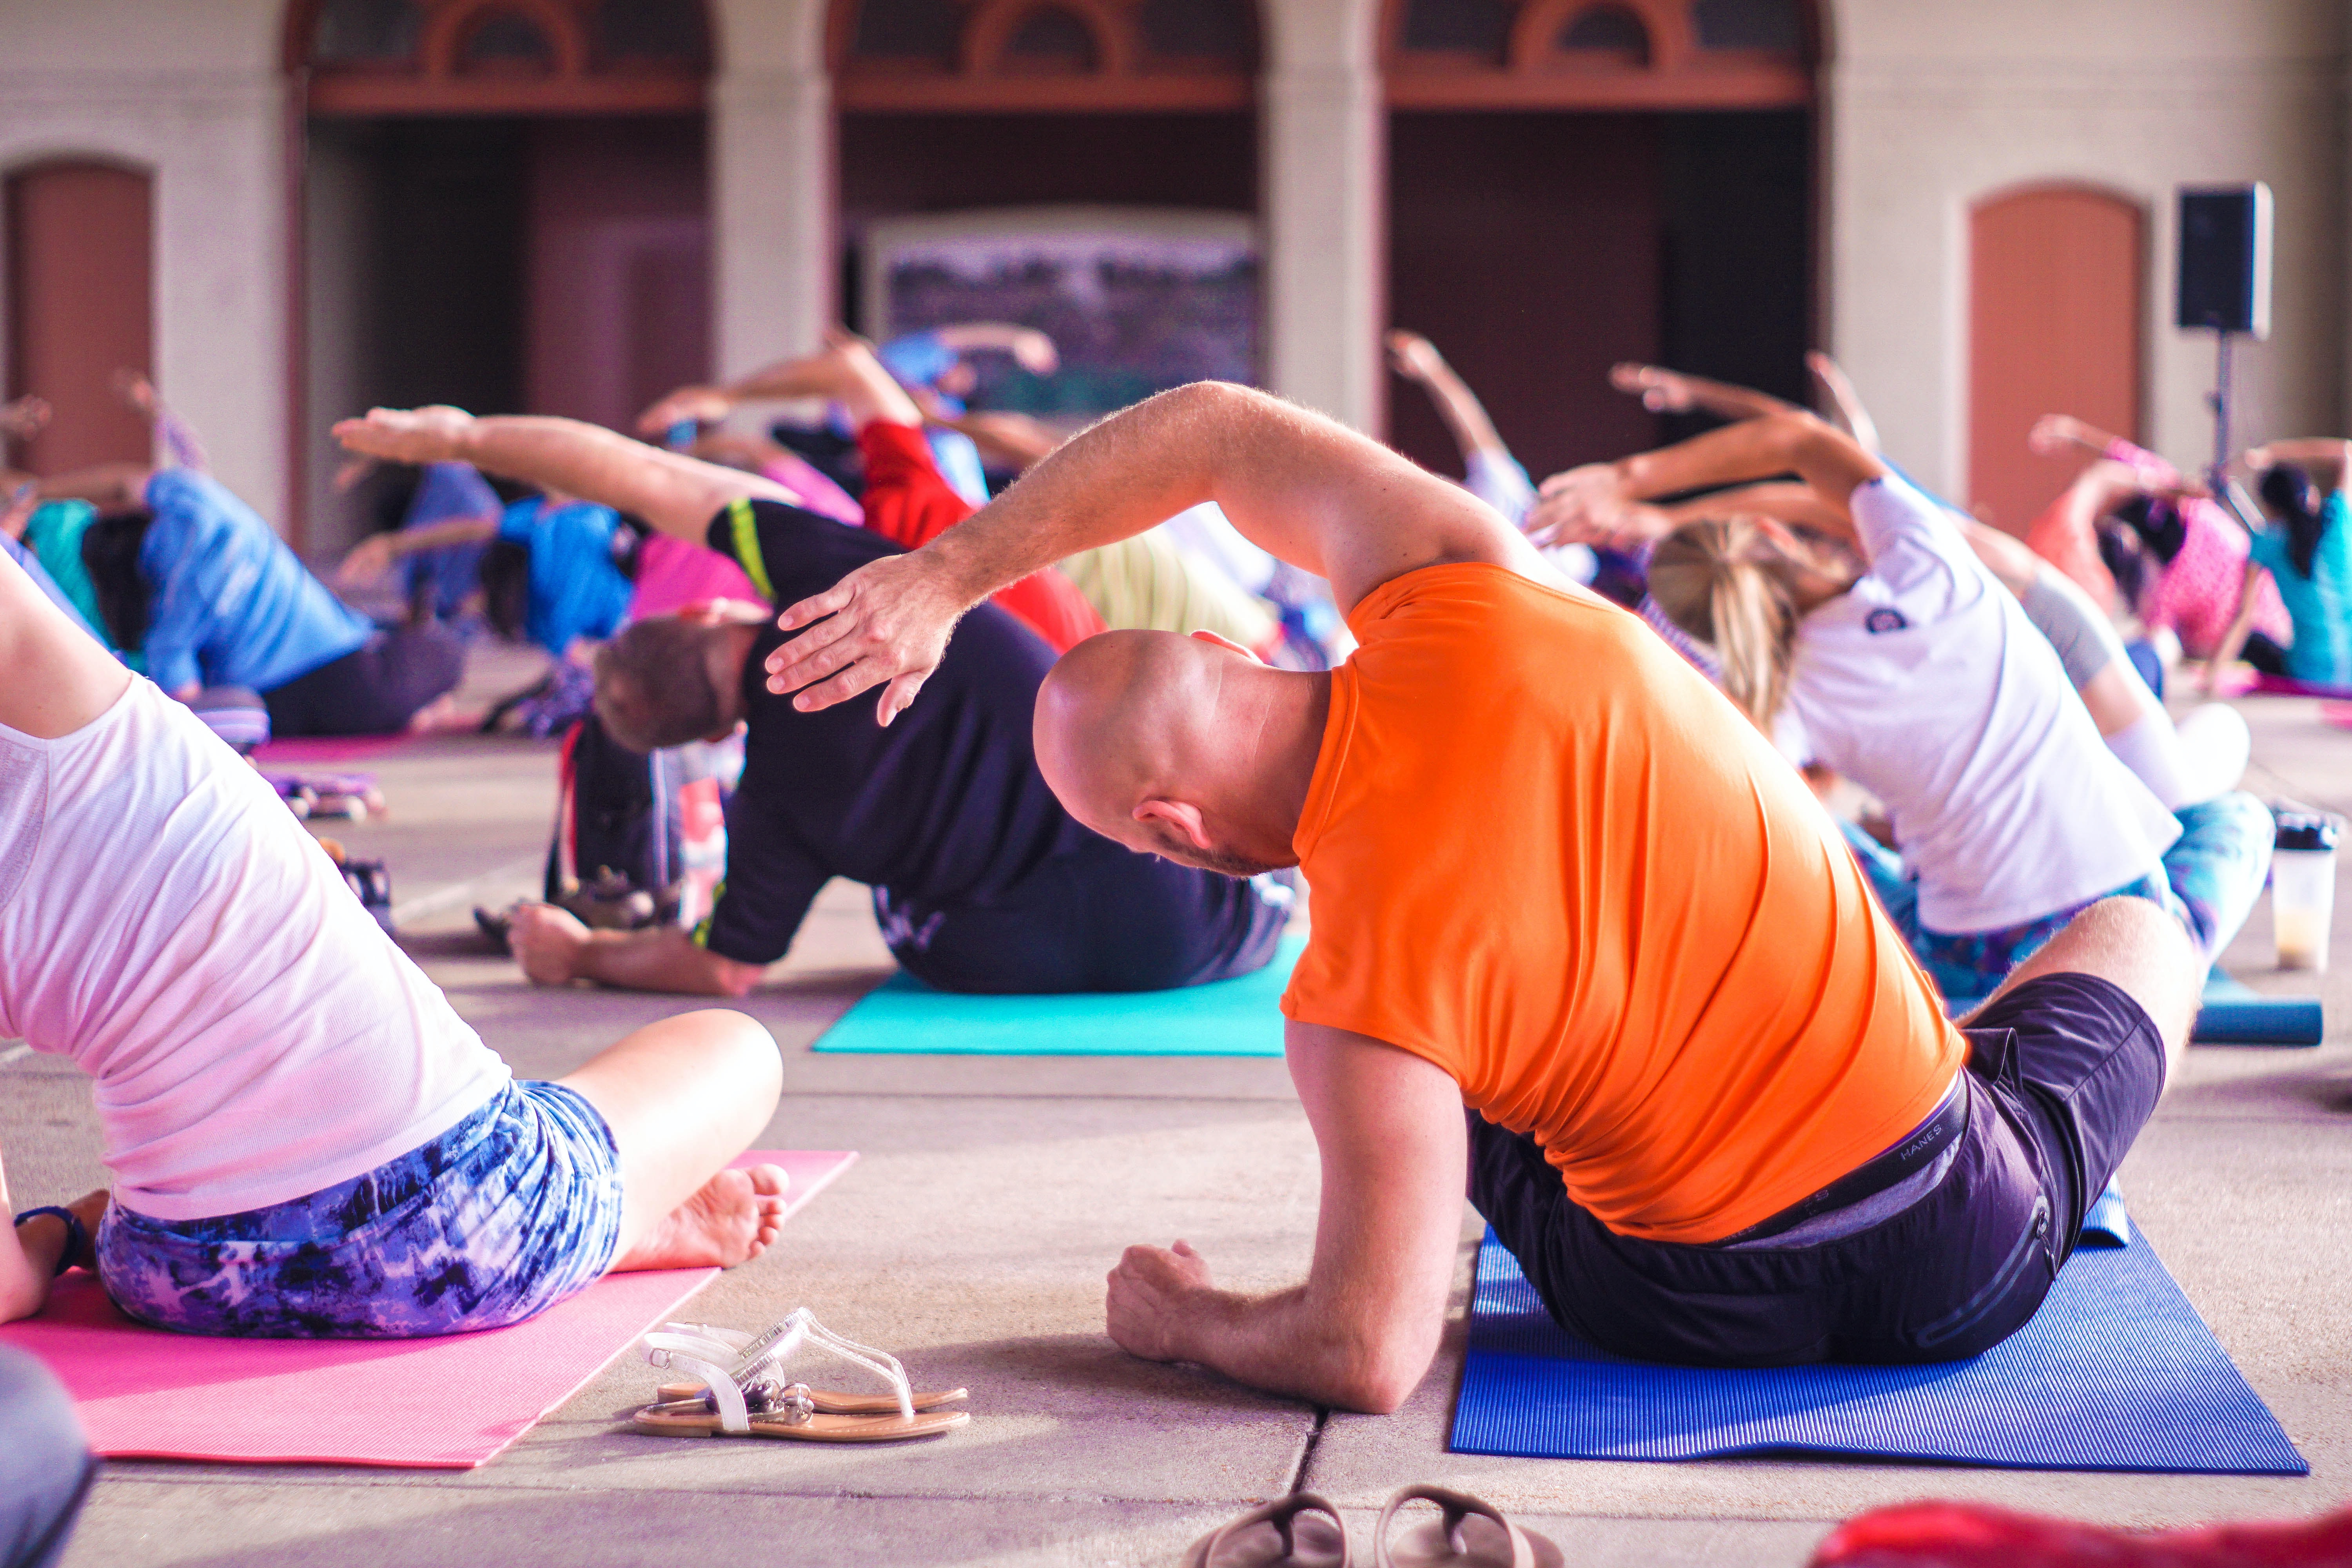 A group of yogis bending left while attending a yoga class.